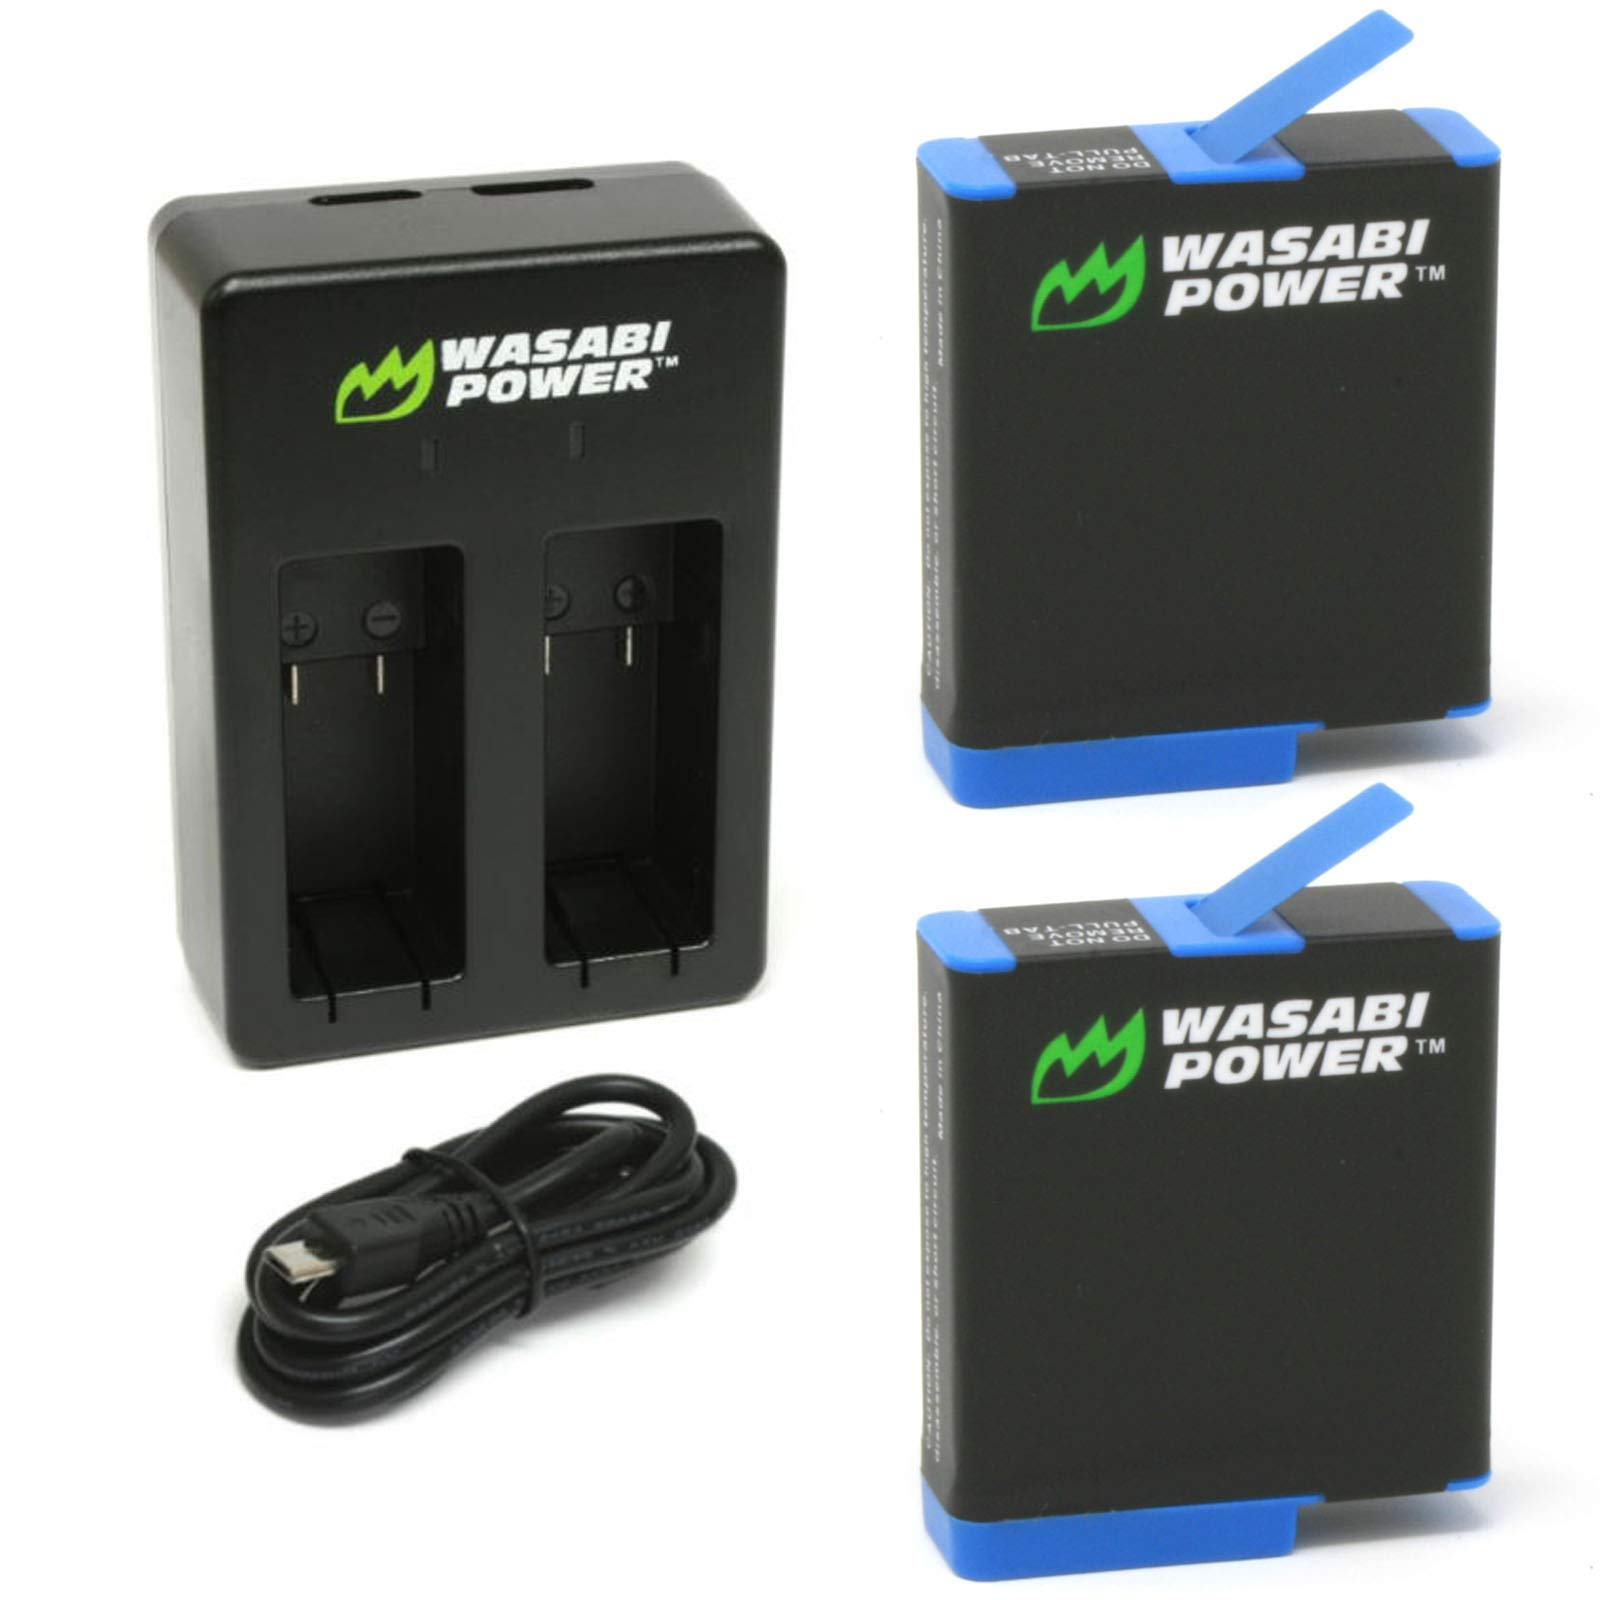 Wasabi Power HERO8 Battery (2-Pack) and Dual Charger for GoPro Hero 8 Black (All Features Available), Hero 7 Black, Hero 6 Black, Hero 5 Black, Hero 2018, Fully Compatible with Original